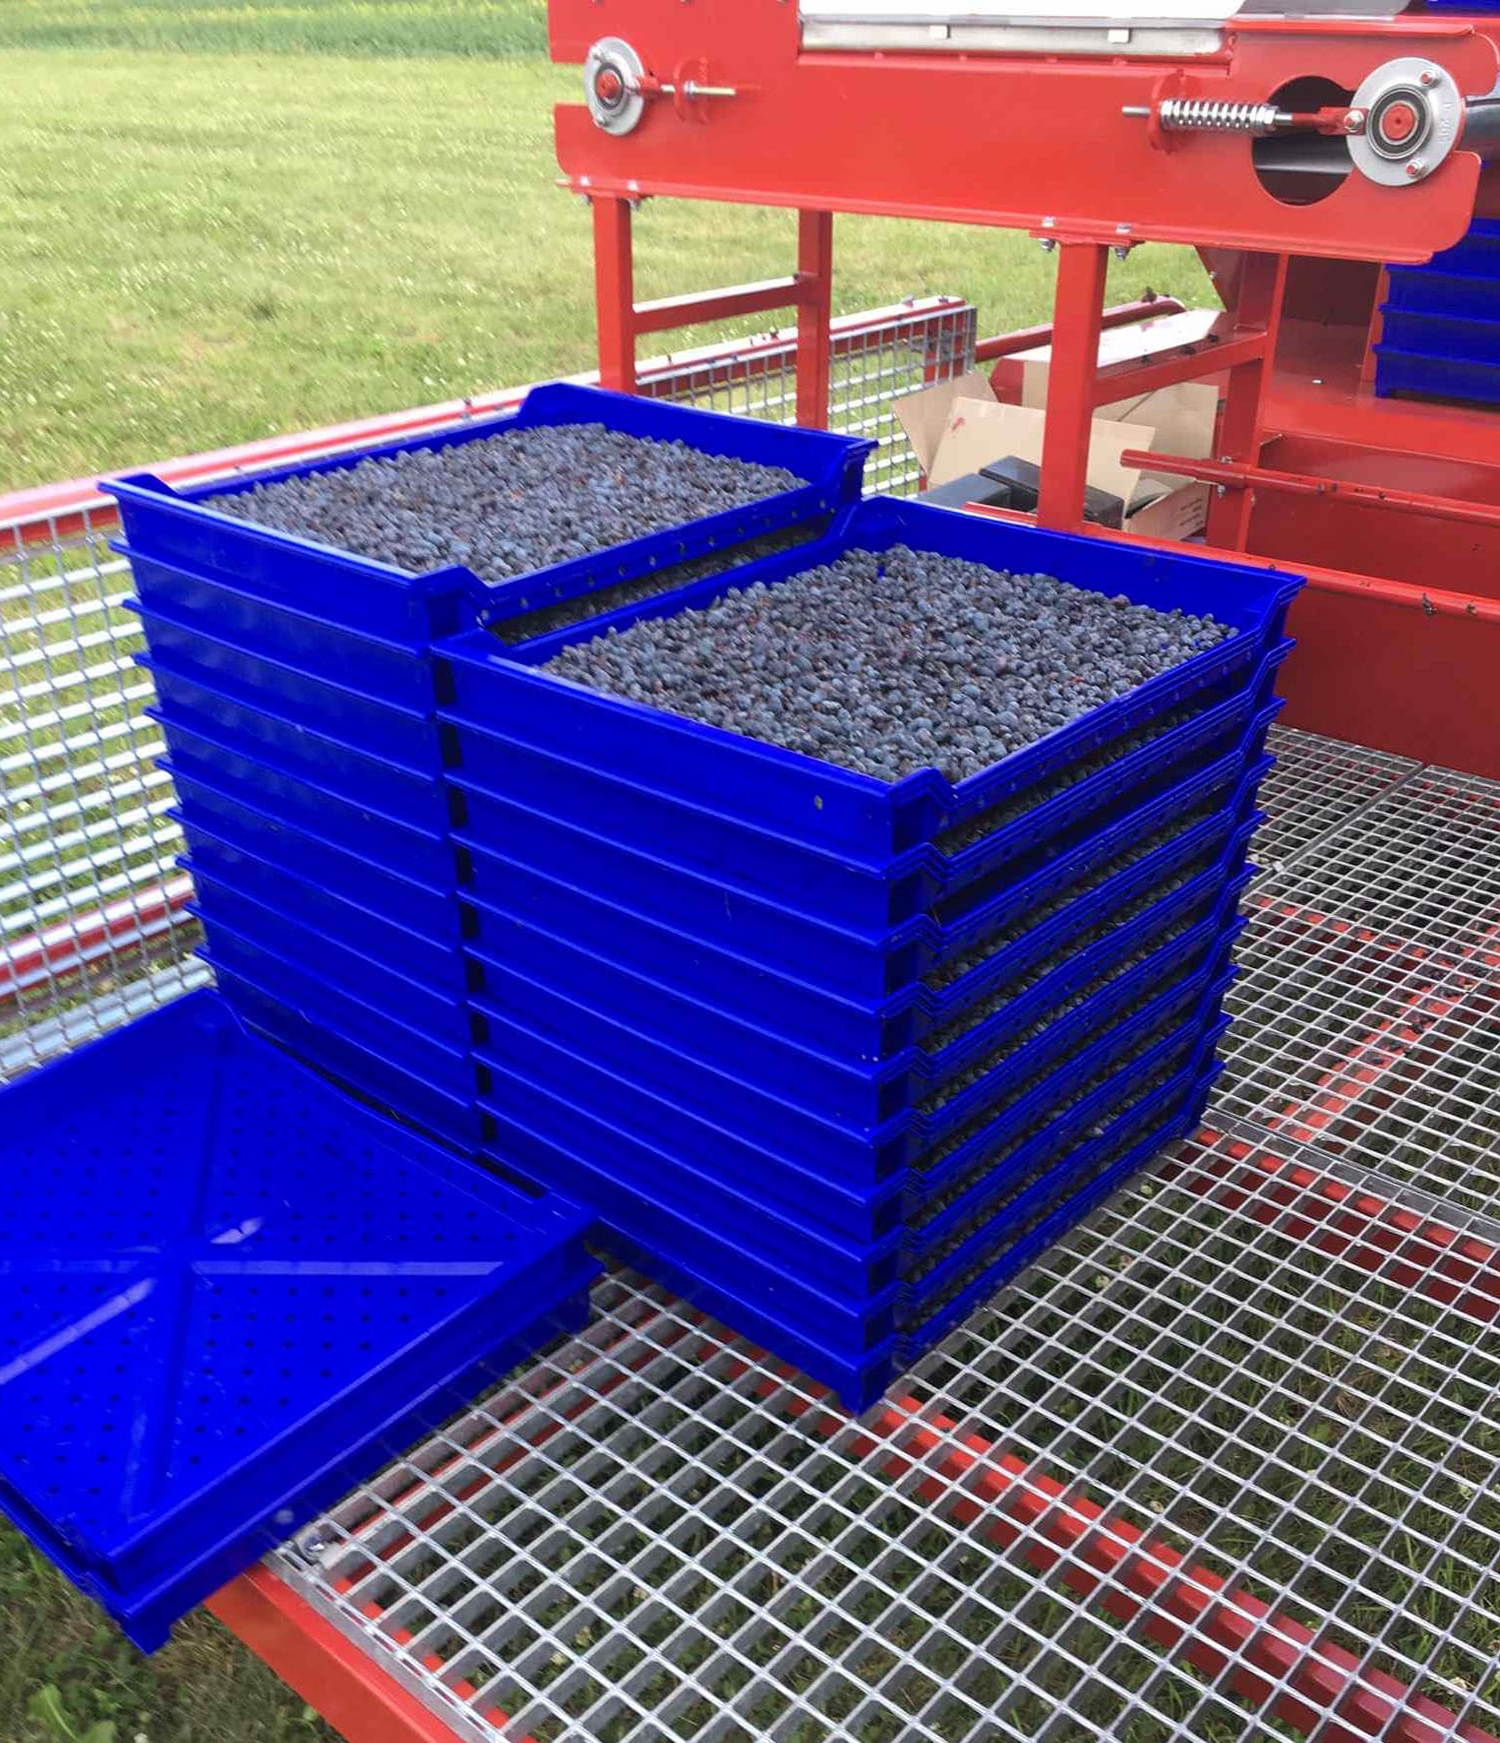 - The berries fall from the chute onto a sorting conveyor belt into trays. Manual sorting takes place at that time to ensure all vegetation and other debris, material other than Haskap, is removed from the trays. The trays are stacked and moved to the transport trailer. The berries are then transported to the final sorting facility, where they are washed, sorted a final time, cooled with cold water, and packed into boxes and buckets.